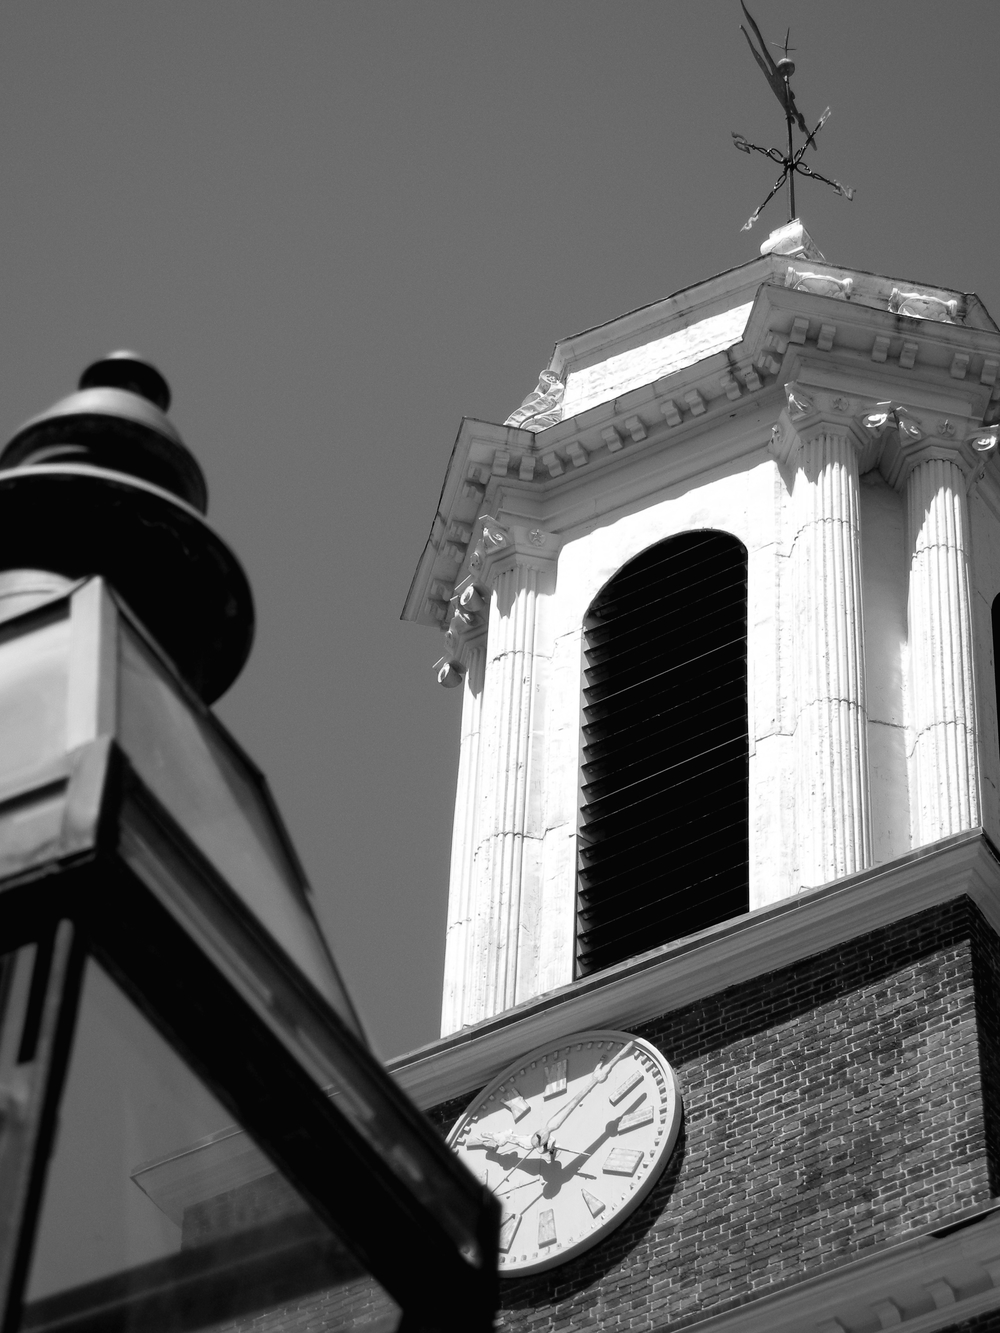 Beacon Hill, Charles street meeting house, Clock tower, street light